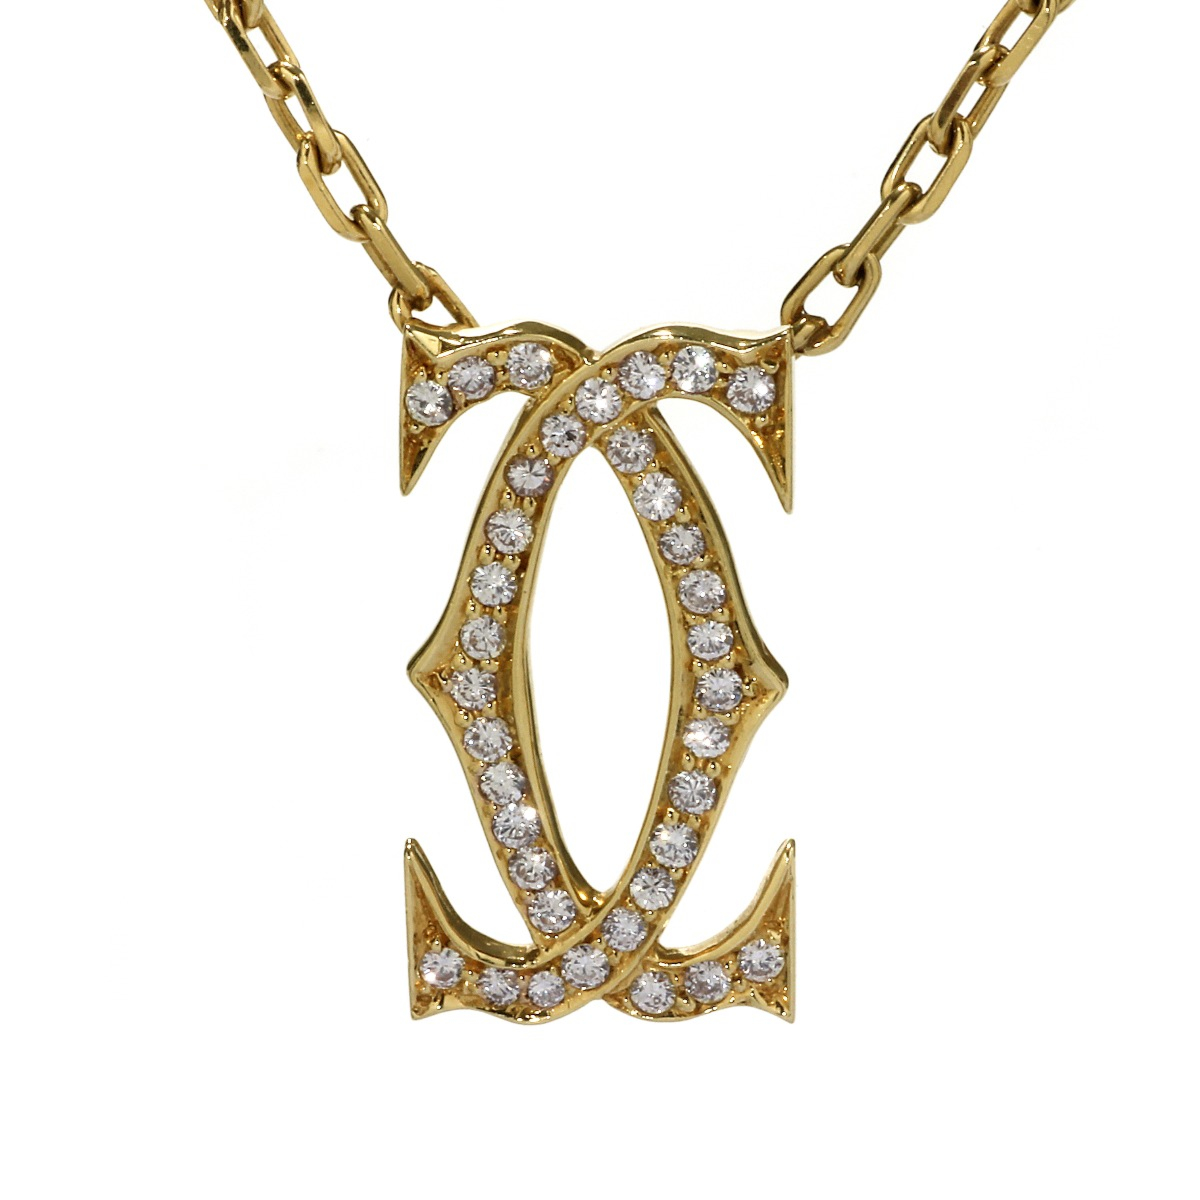 Cartier Double C Diamond Gold Necklace - Cartier Jewelry